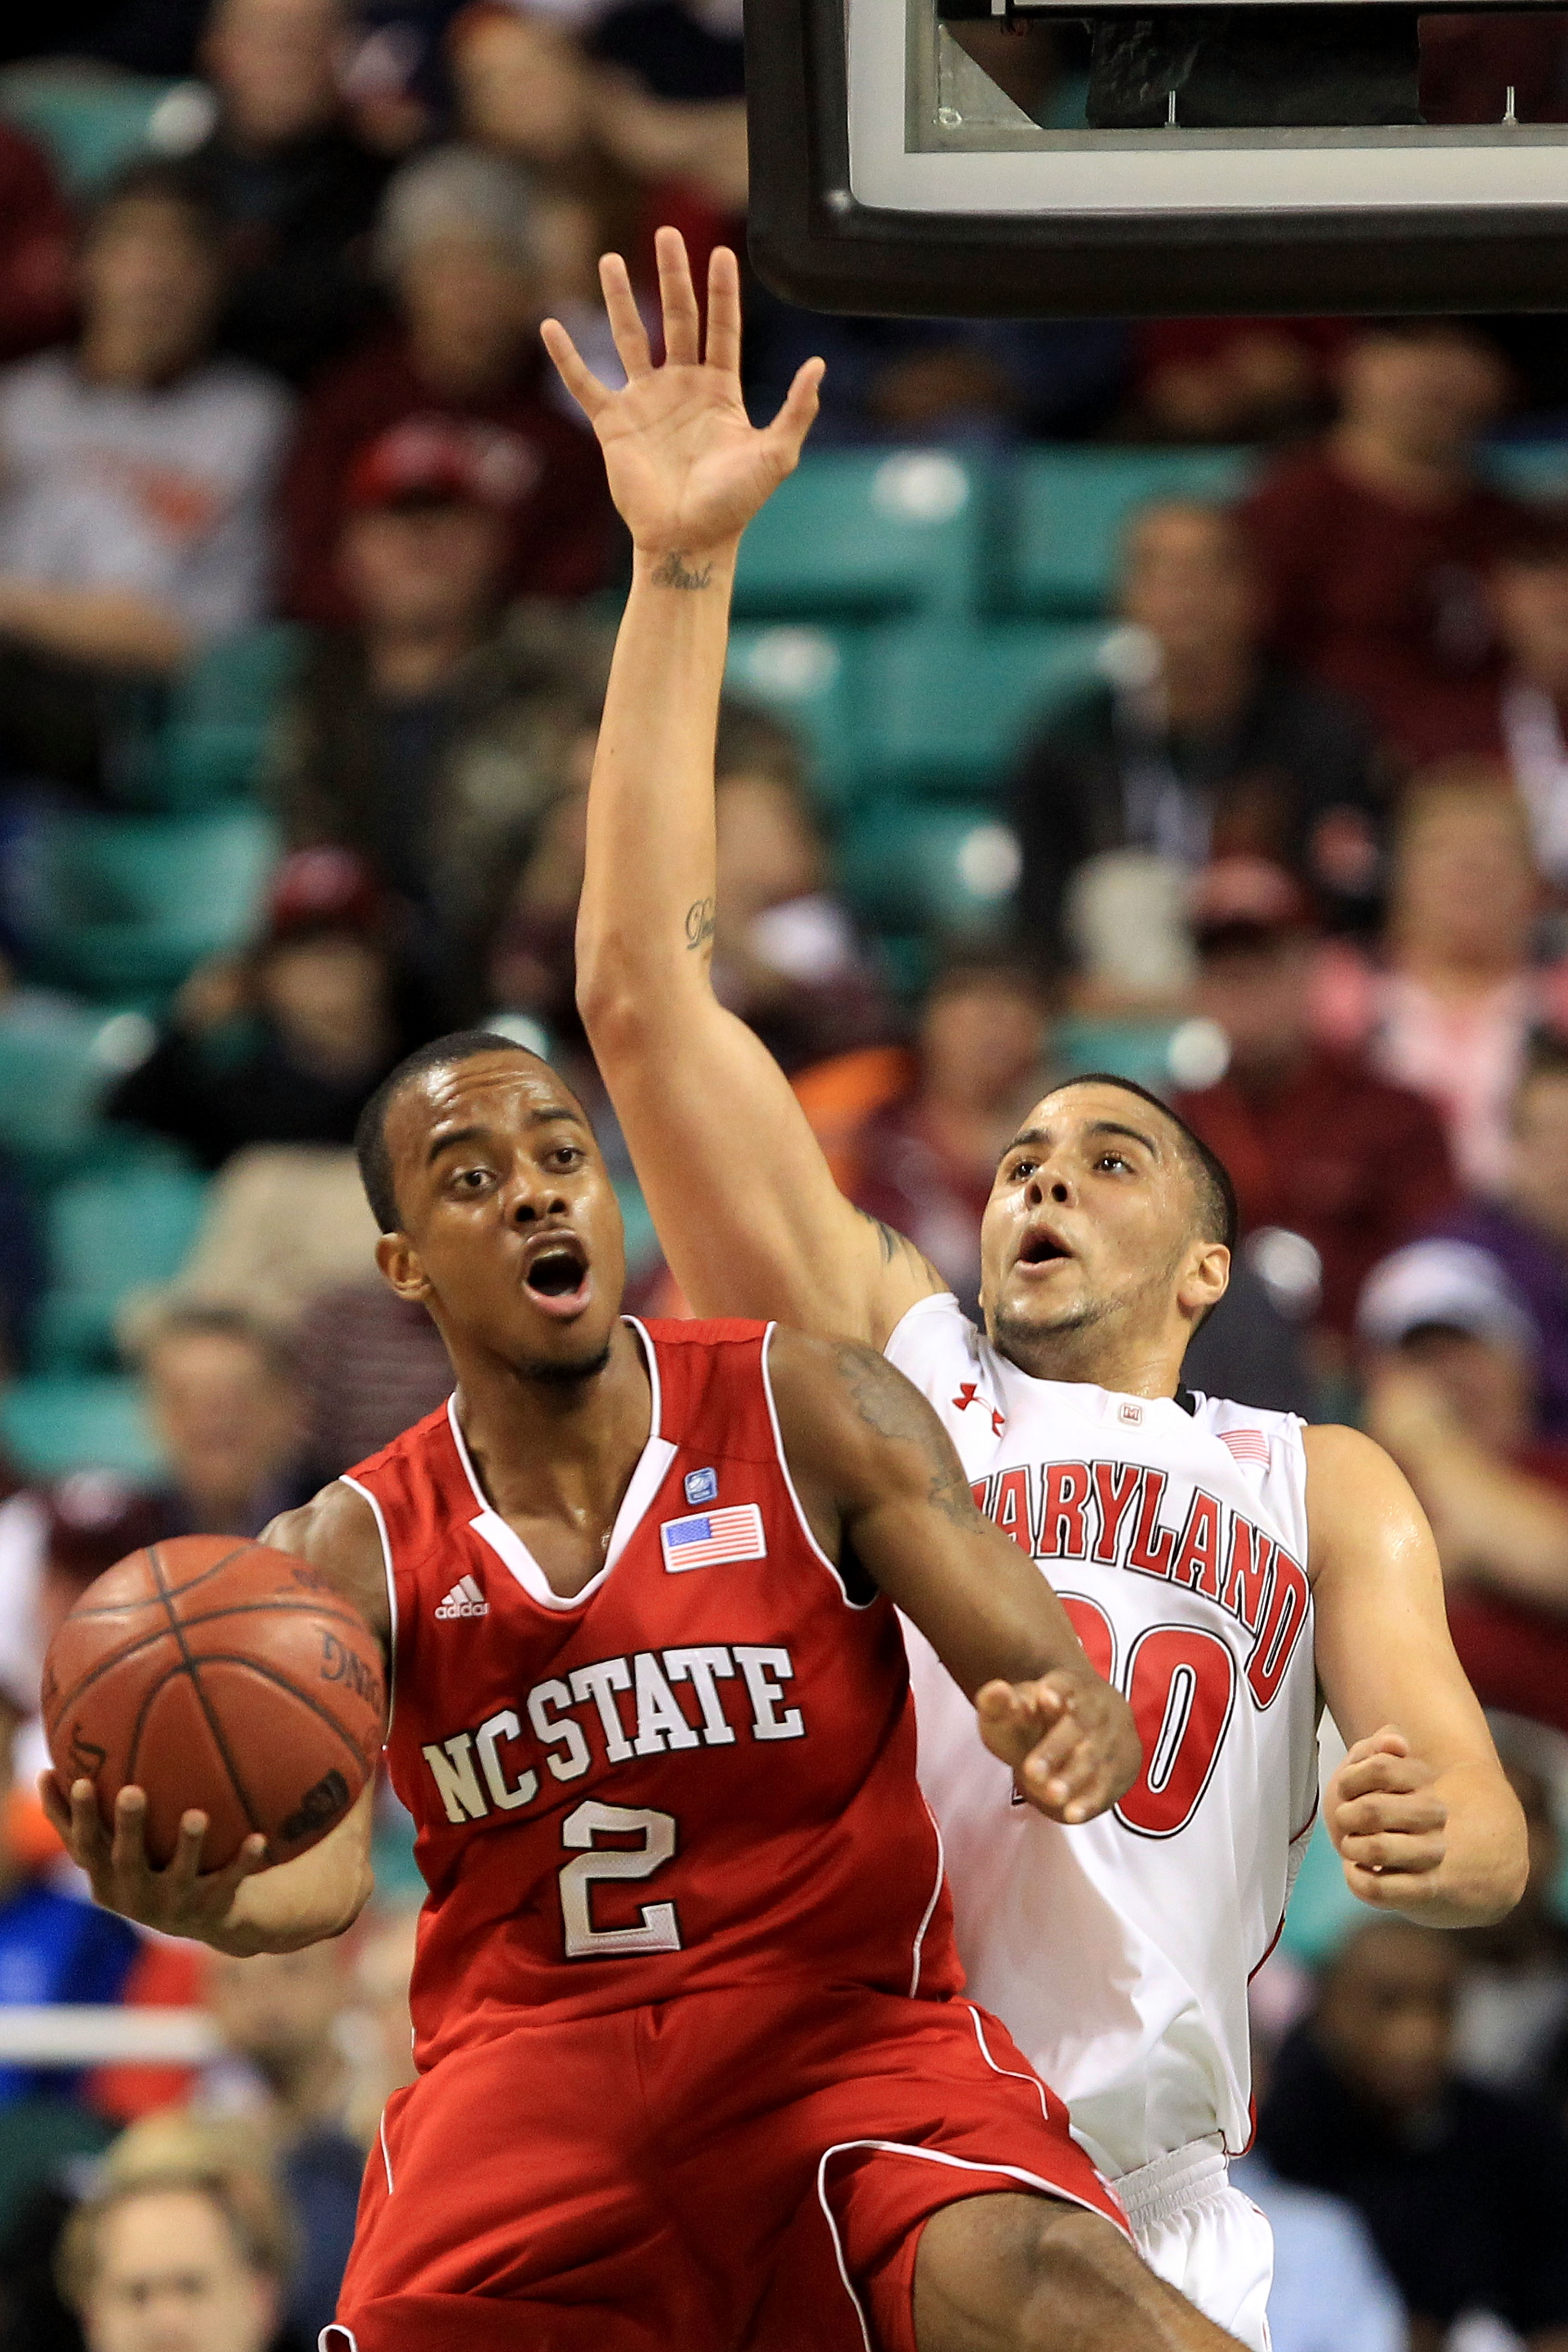 GREENSBORO, NC - MARCH 10:  Lorenzo Brown #2 of the North Carolina State Wolfpack reacts as he is blocked by Jordan Williams #20 of the Maryland Terrapins during the first round of the 2011 ACC men's basketball tournament at the Greensboro Coliseum on Mar